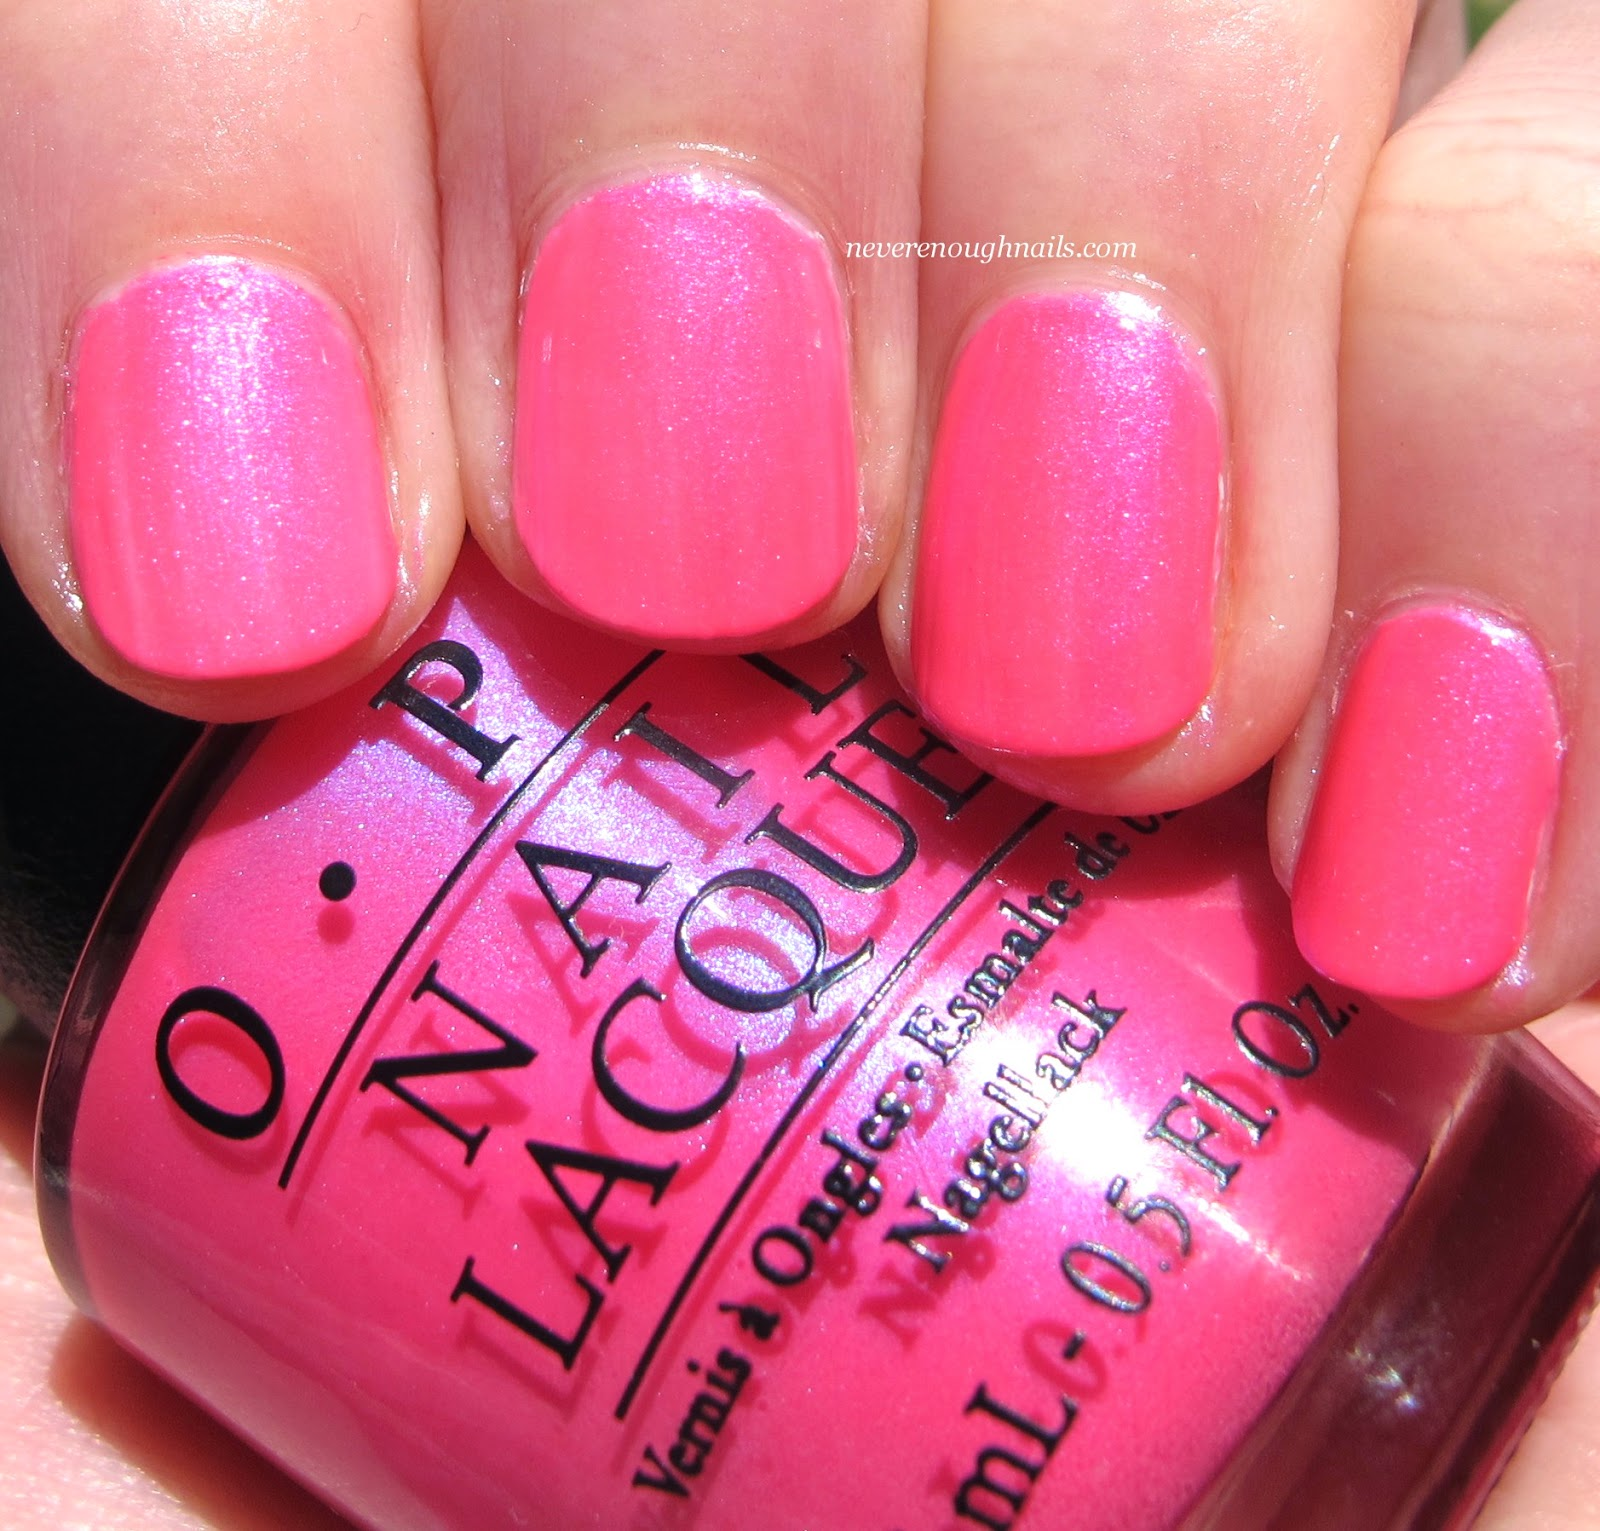 never enough nails: opi full size neons swatches!!